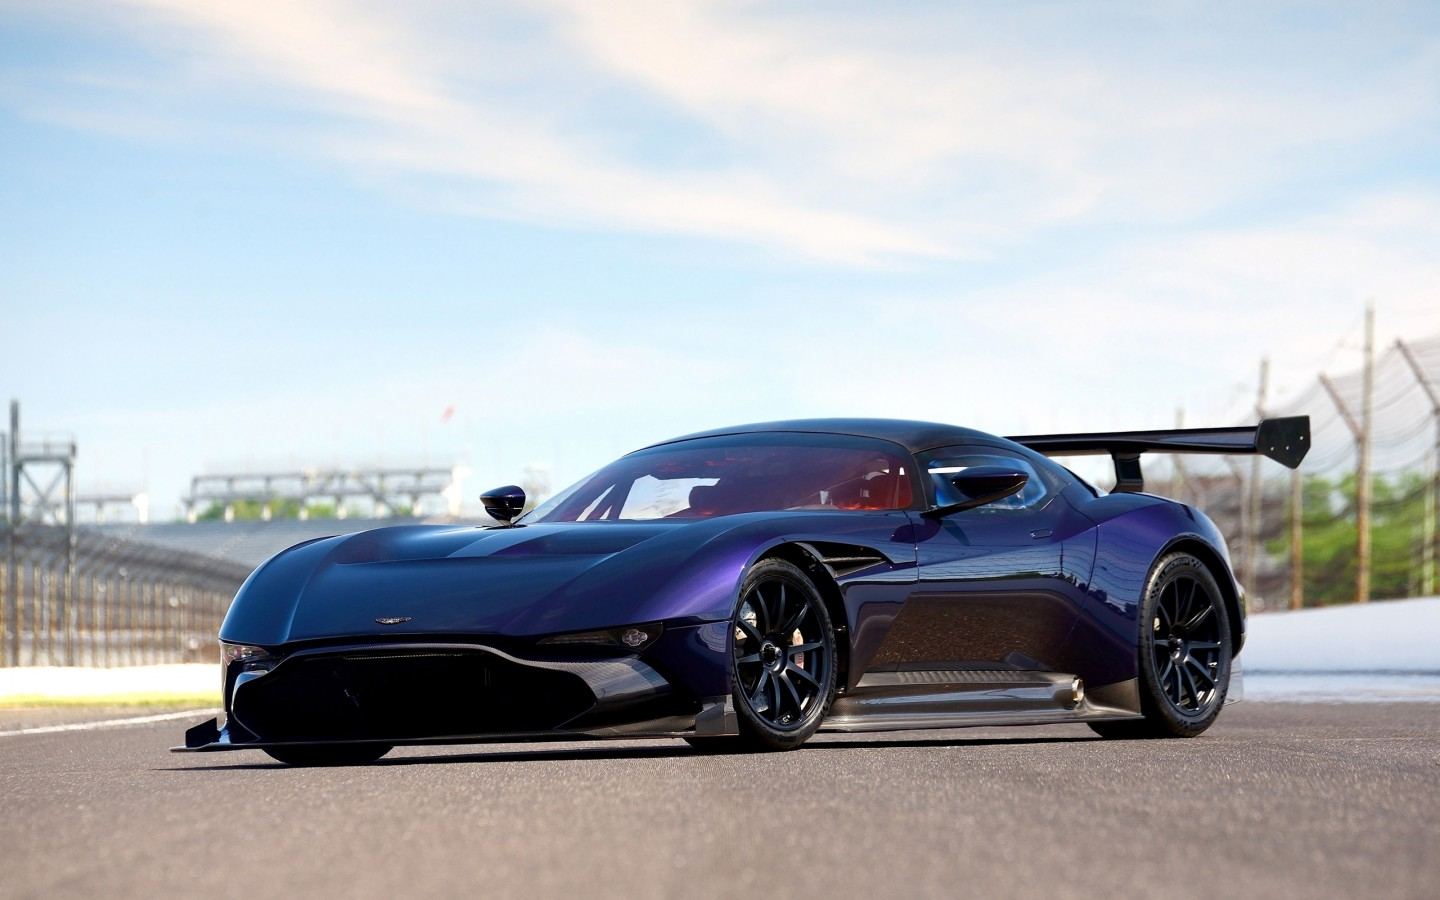 2016 aston martin vulcan wallpaper hd car wallpapers id. Black Bedroom Furniture Sets. Home Design Ideas